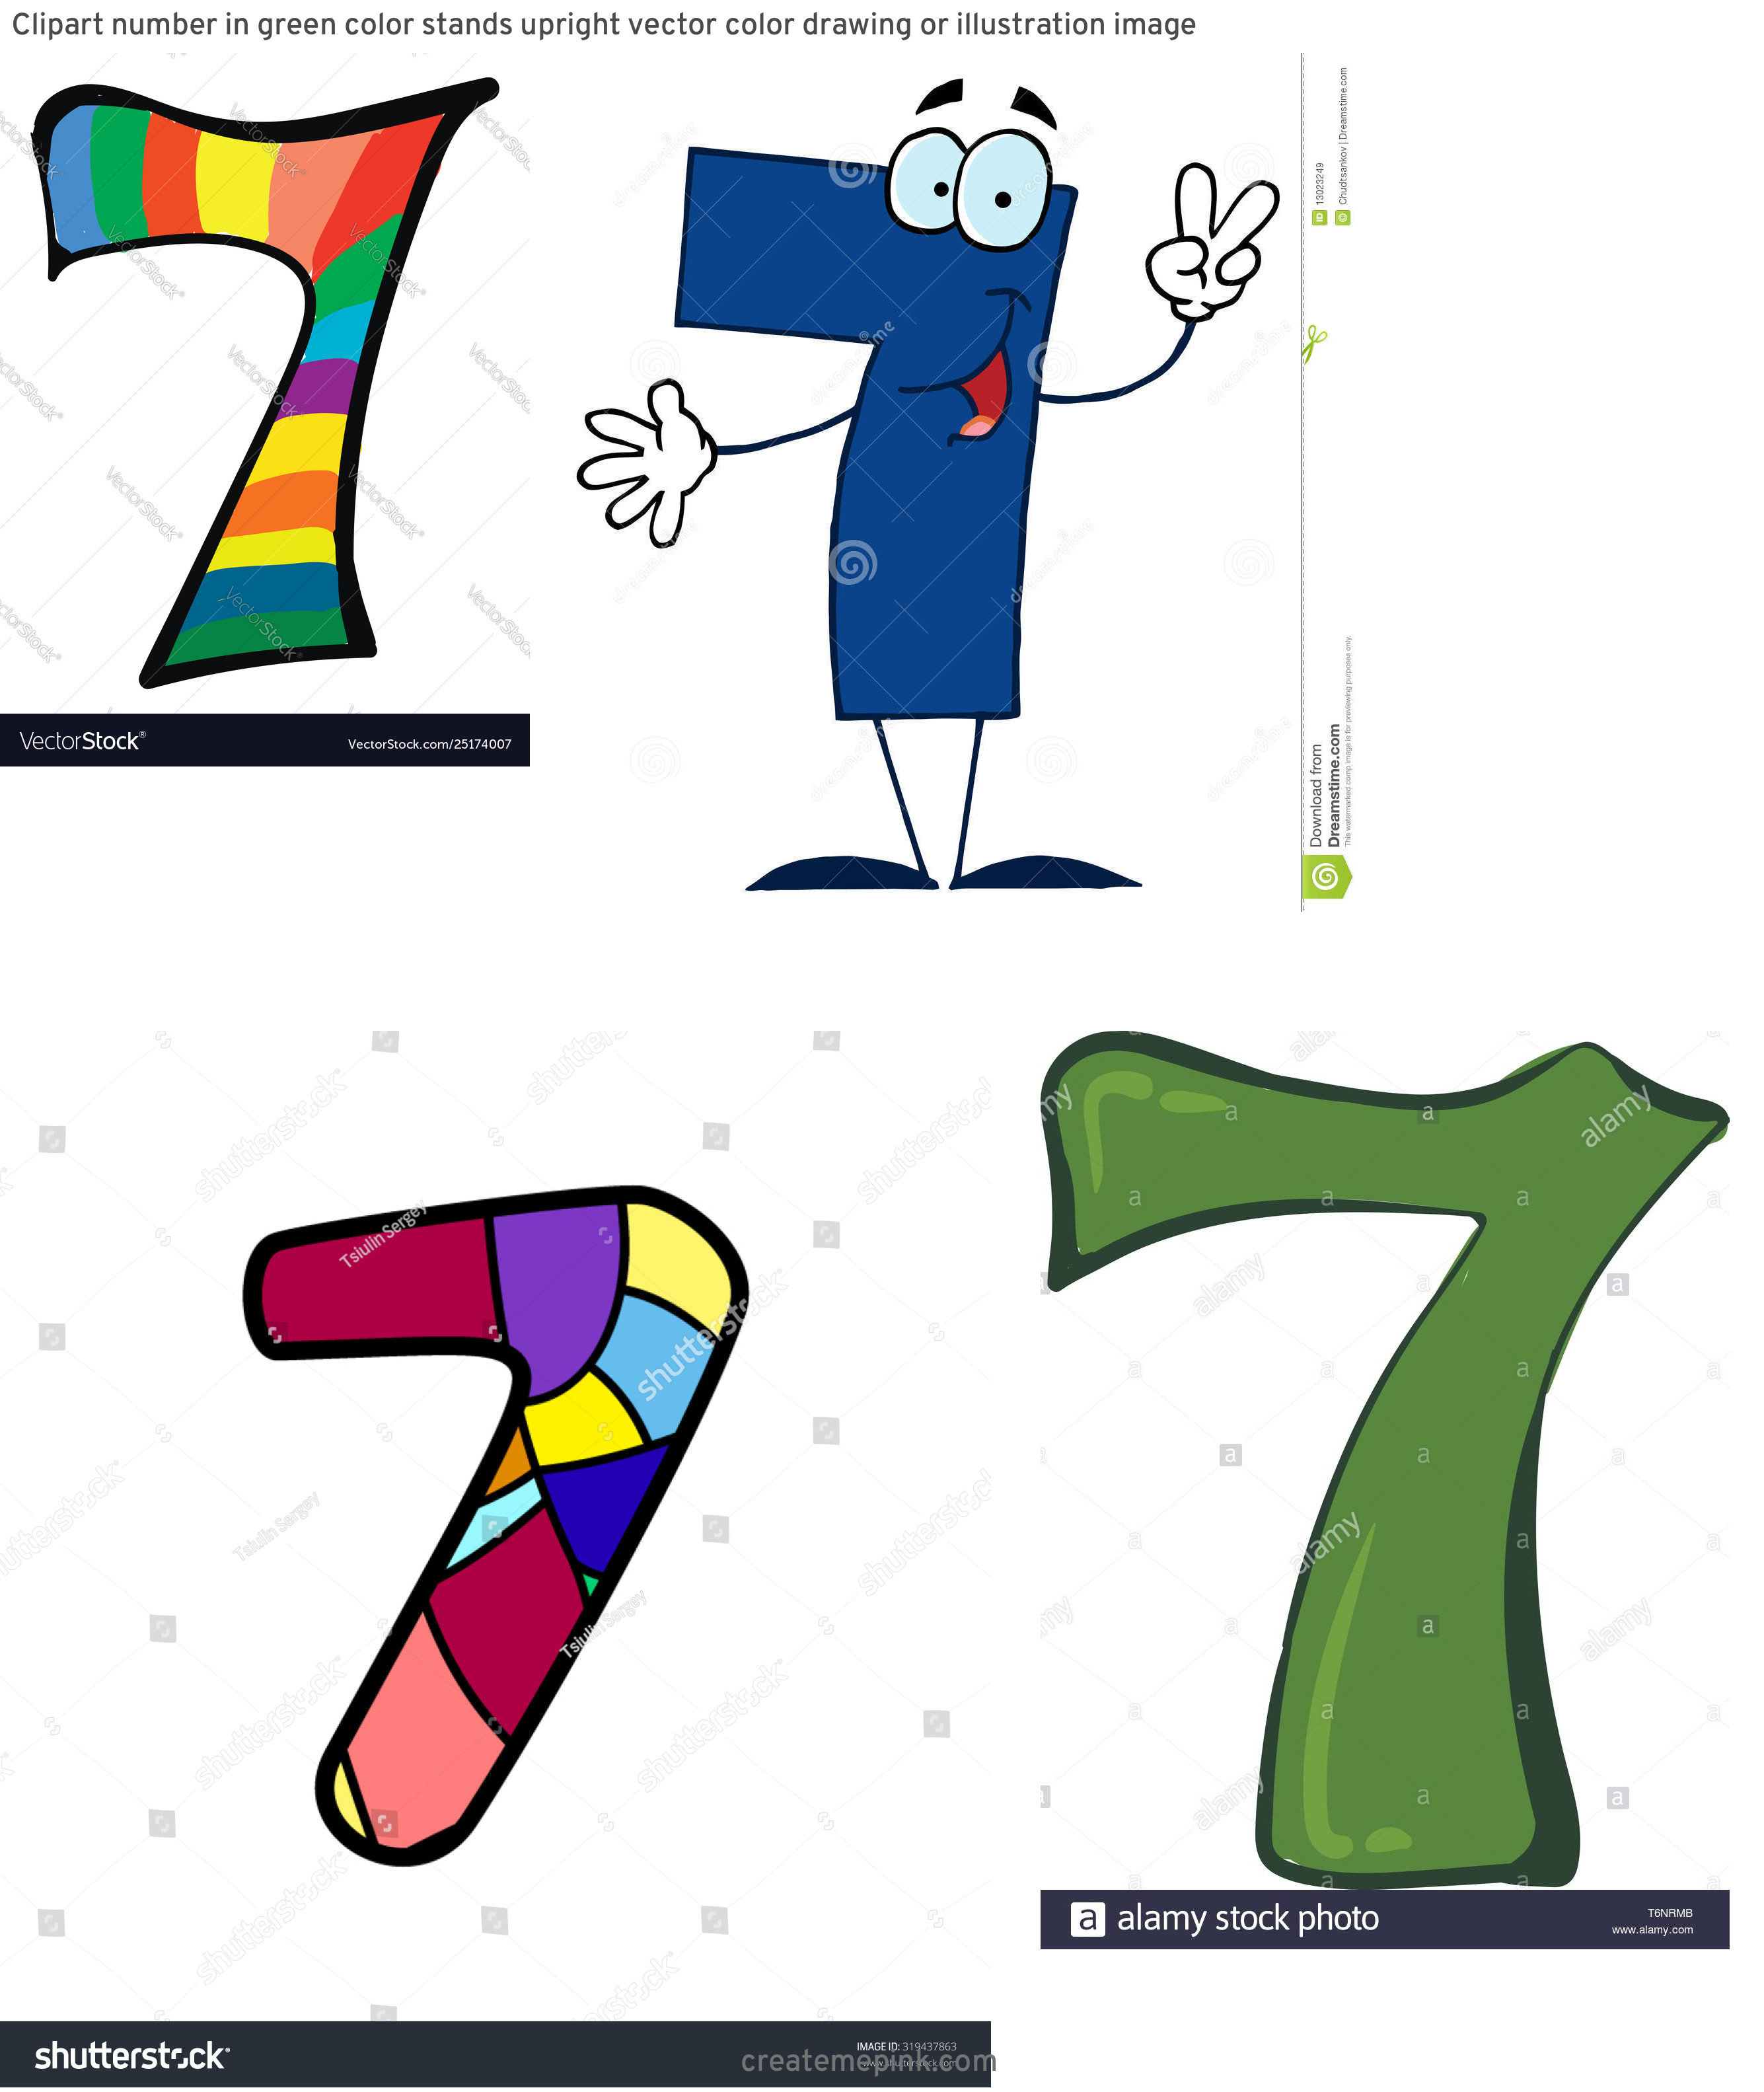 Stock Vector Number 7 Clip Art: Clipart Number In Green Color Stands Upright Vector Color Drawing Or Illustration Image